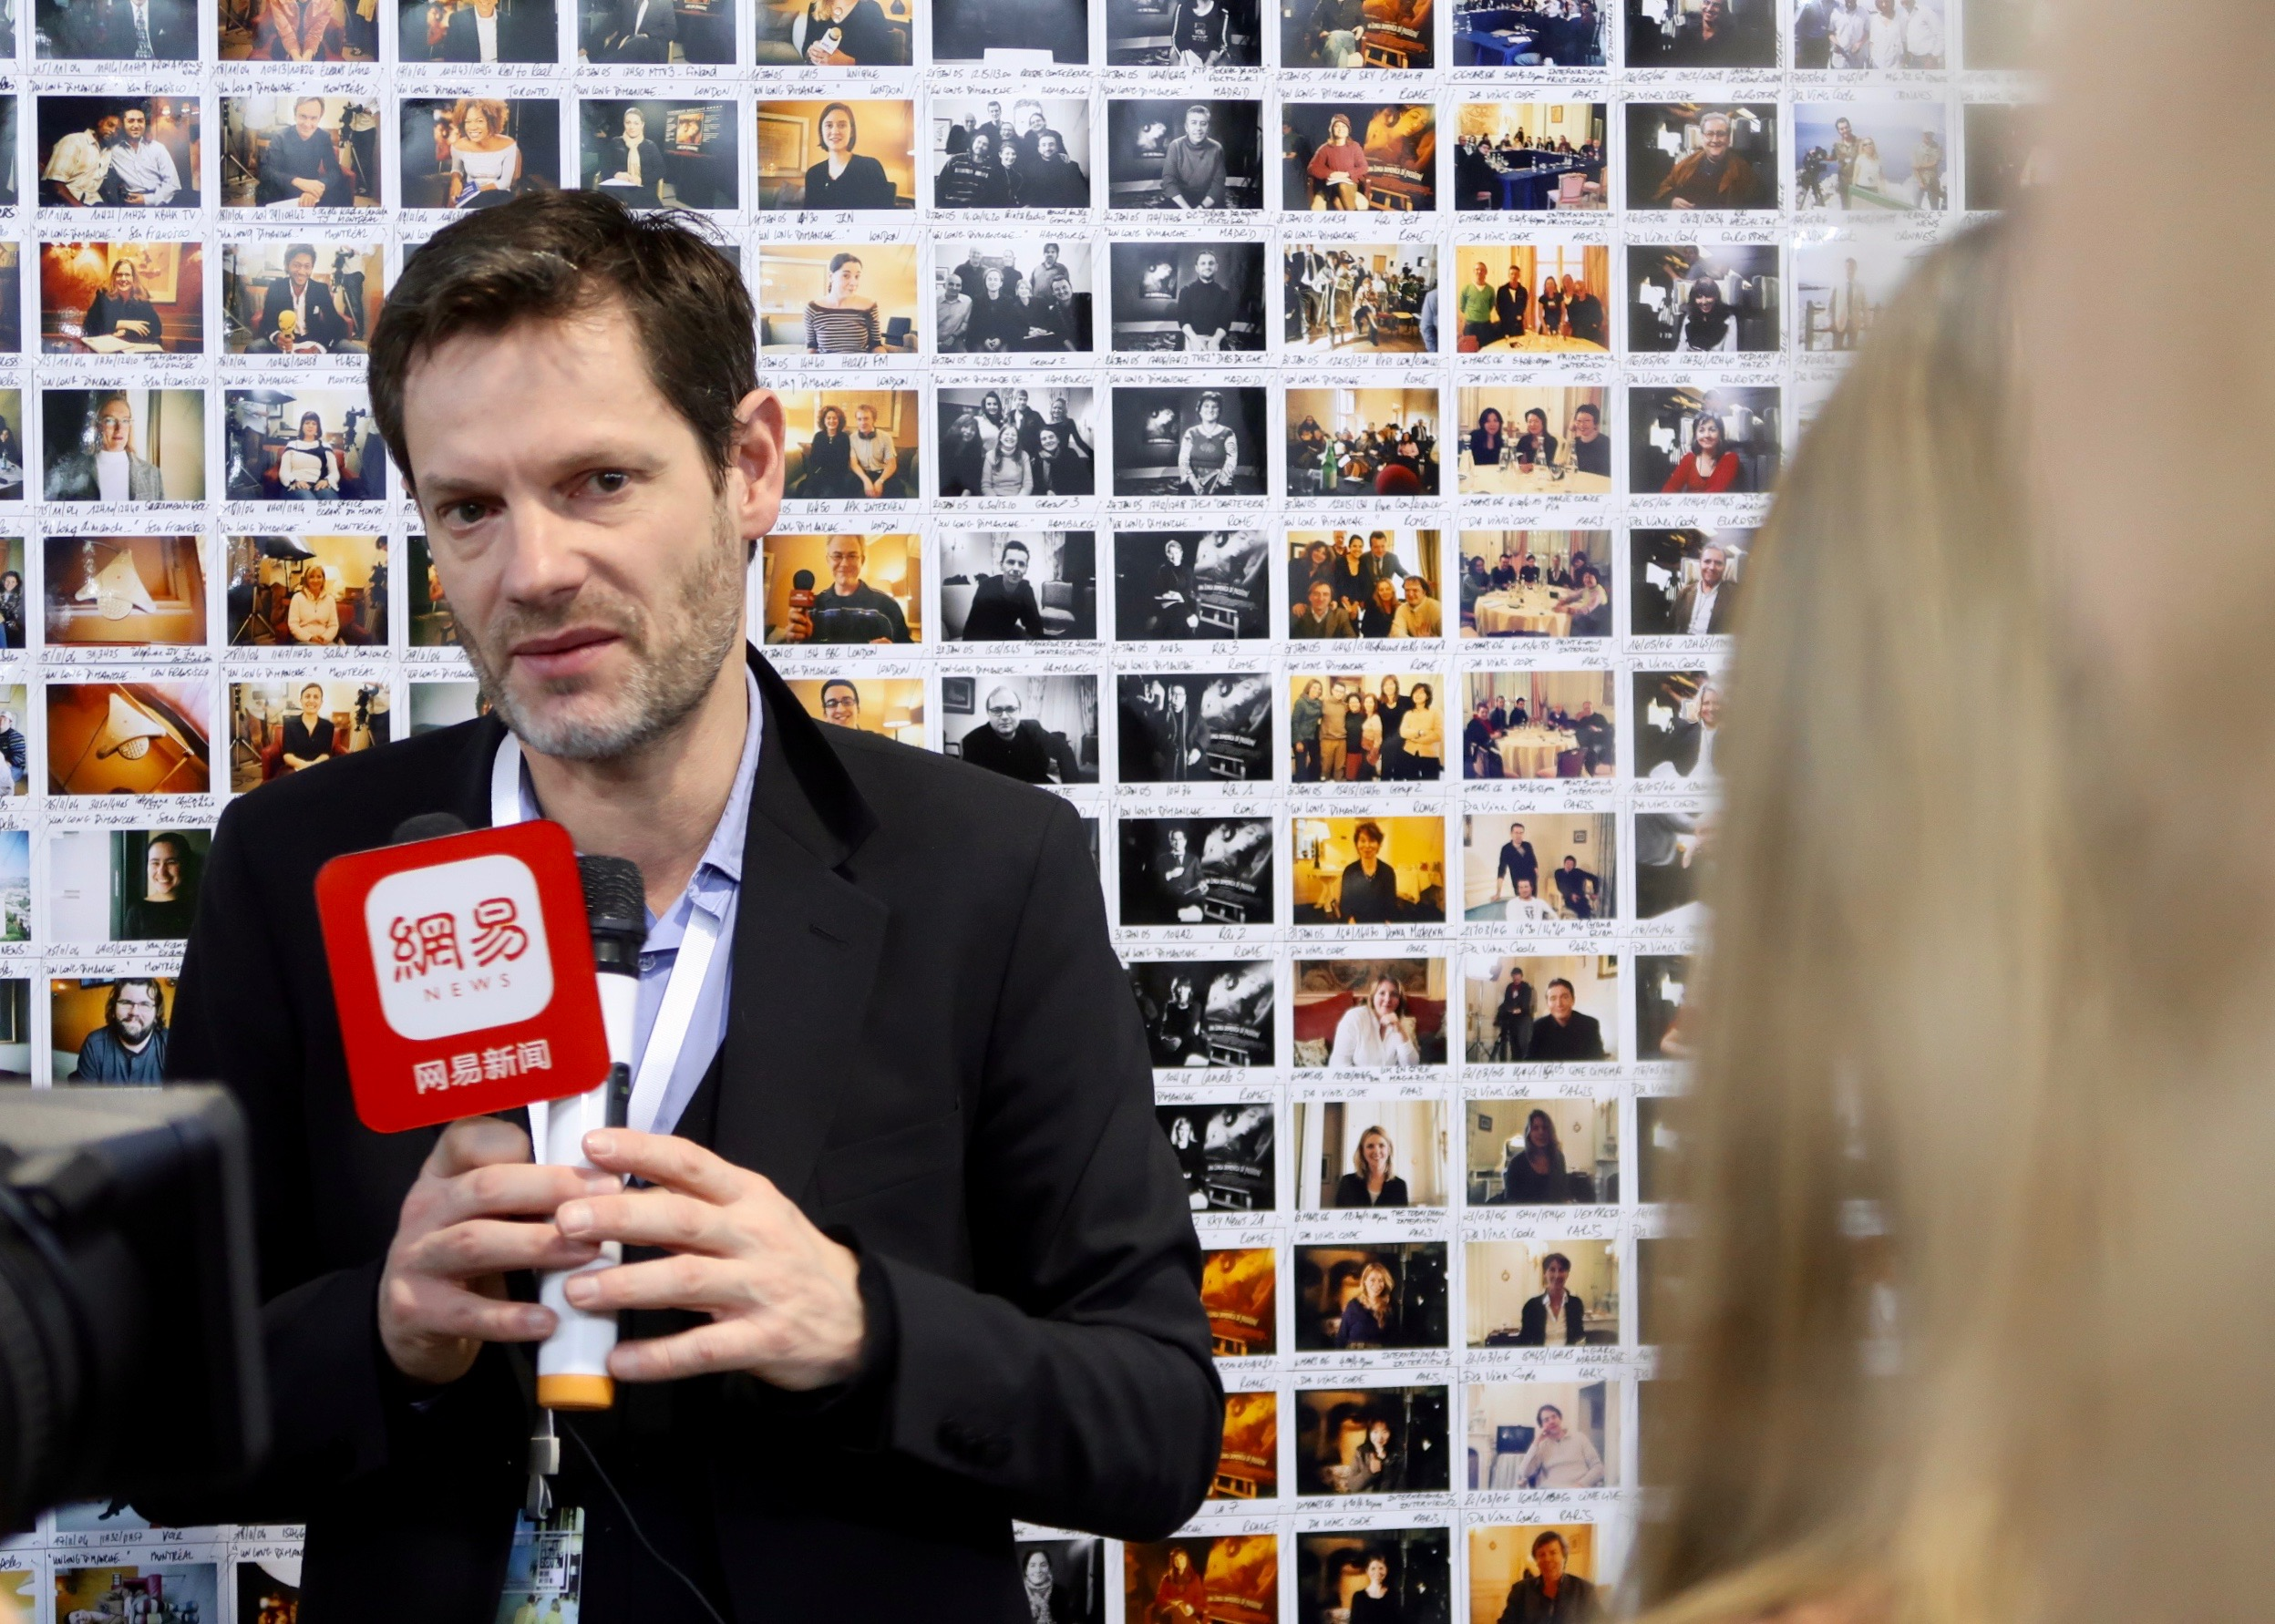 Sam Stourdzé speaking to local media at Jimei Citizen Square main exhibition hall © Marine Cabos